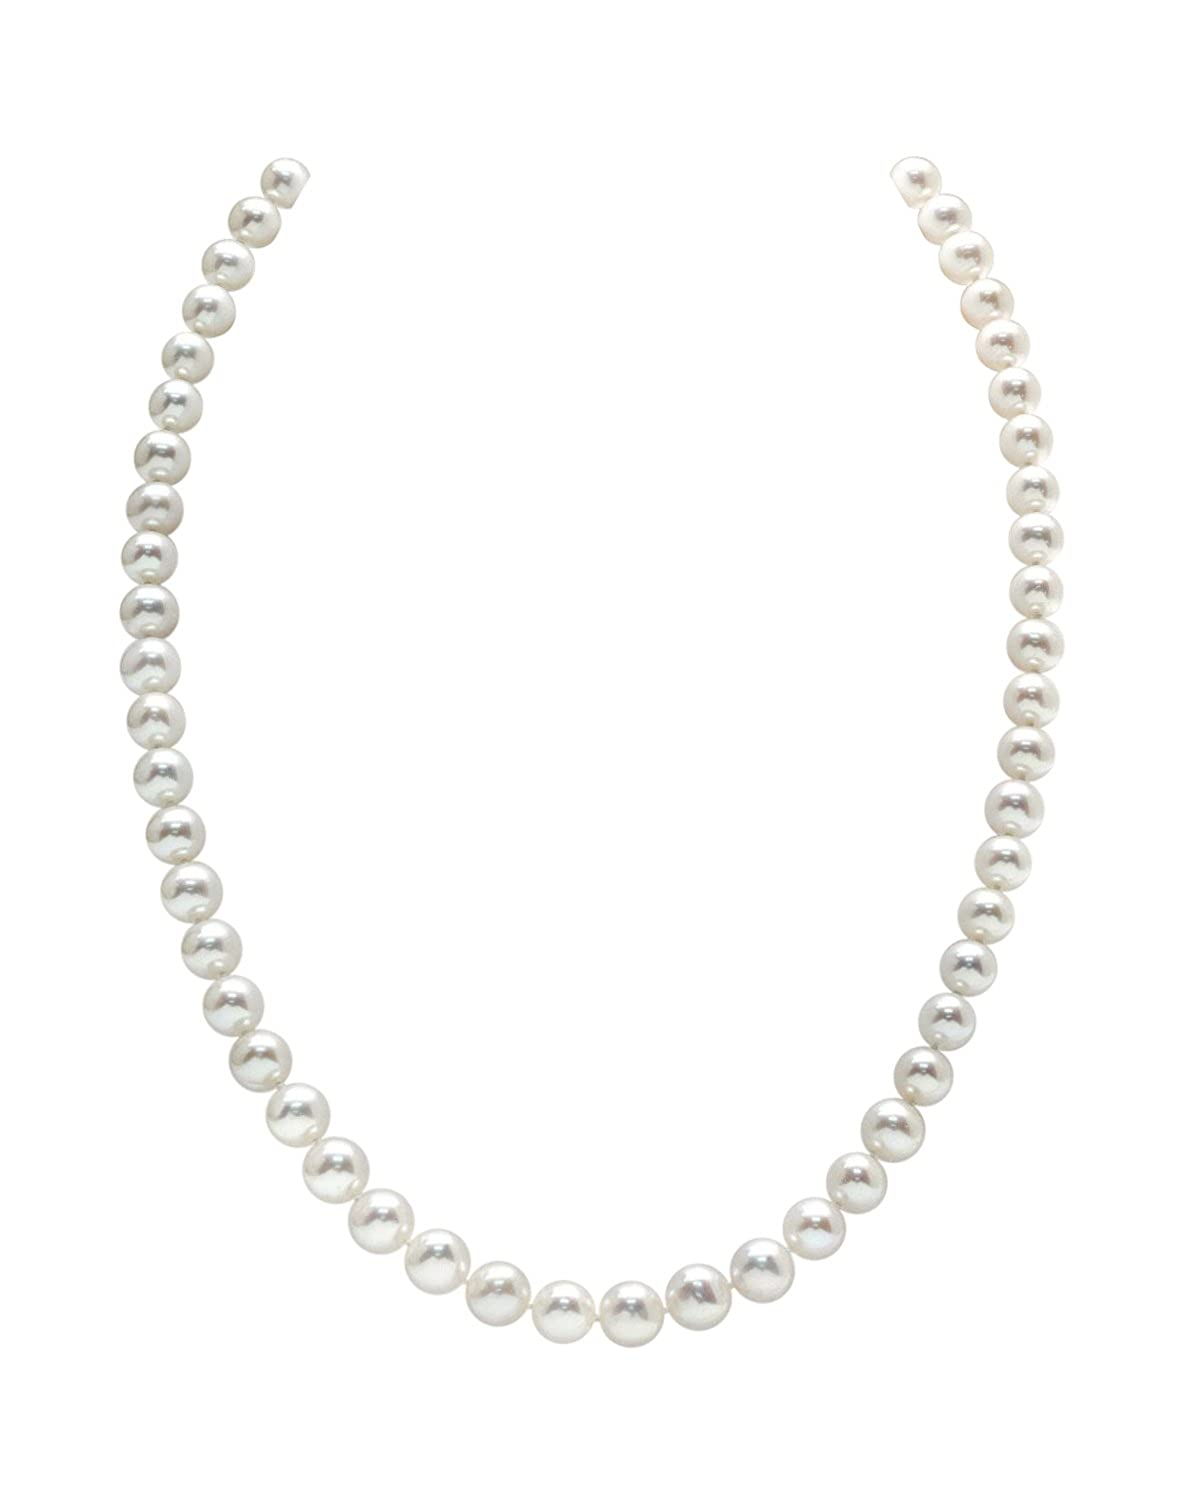 THE PEARL SOURCE AAA Quality Round White Freshwater Cultured Pearl Necklace for Women